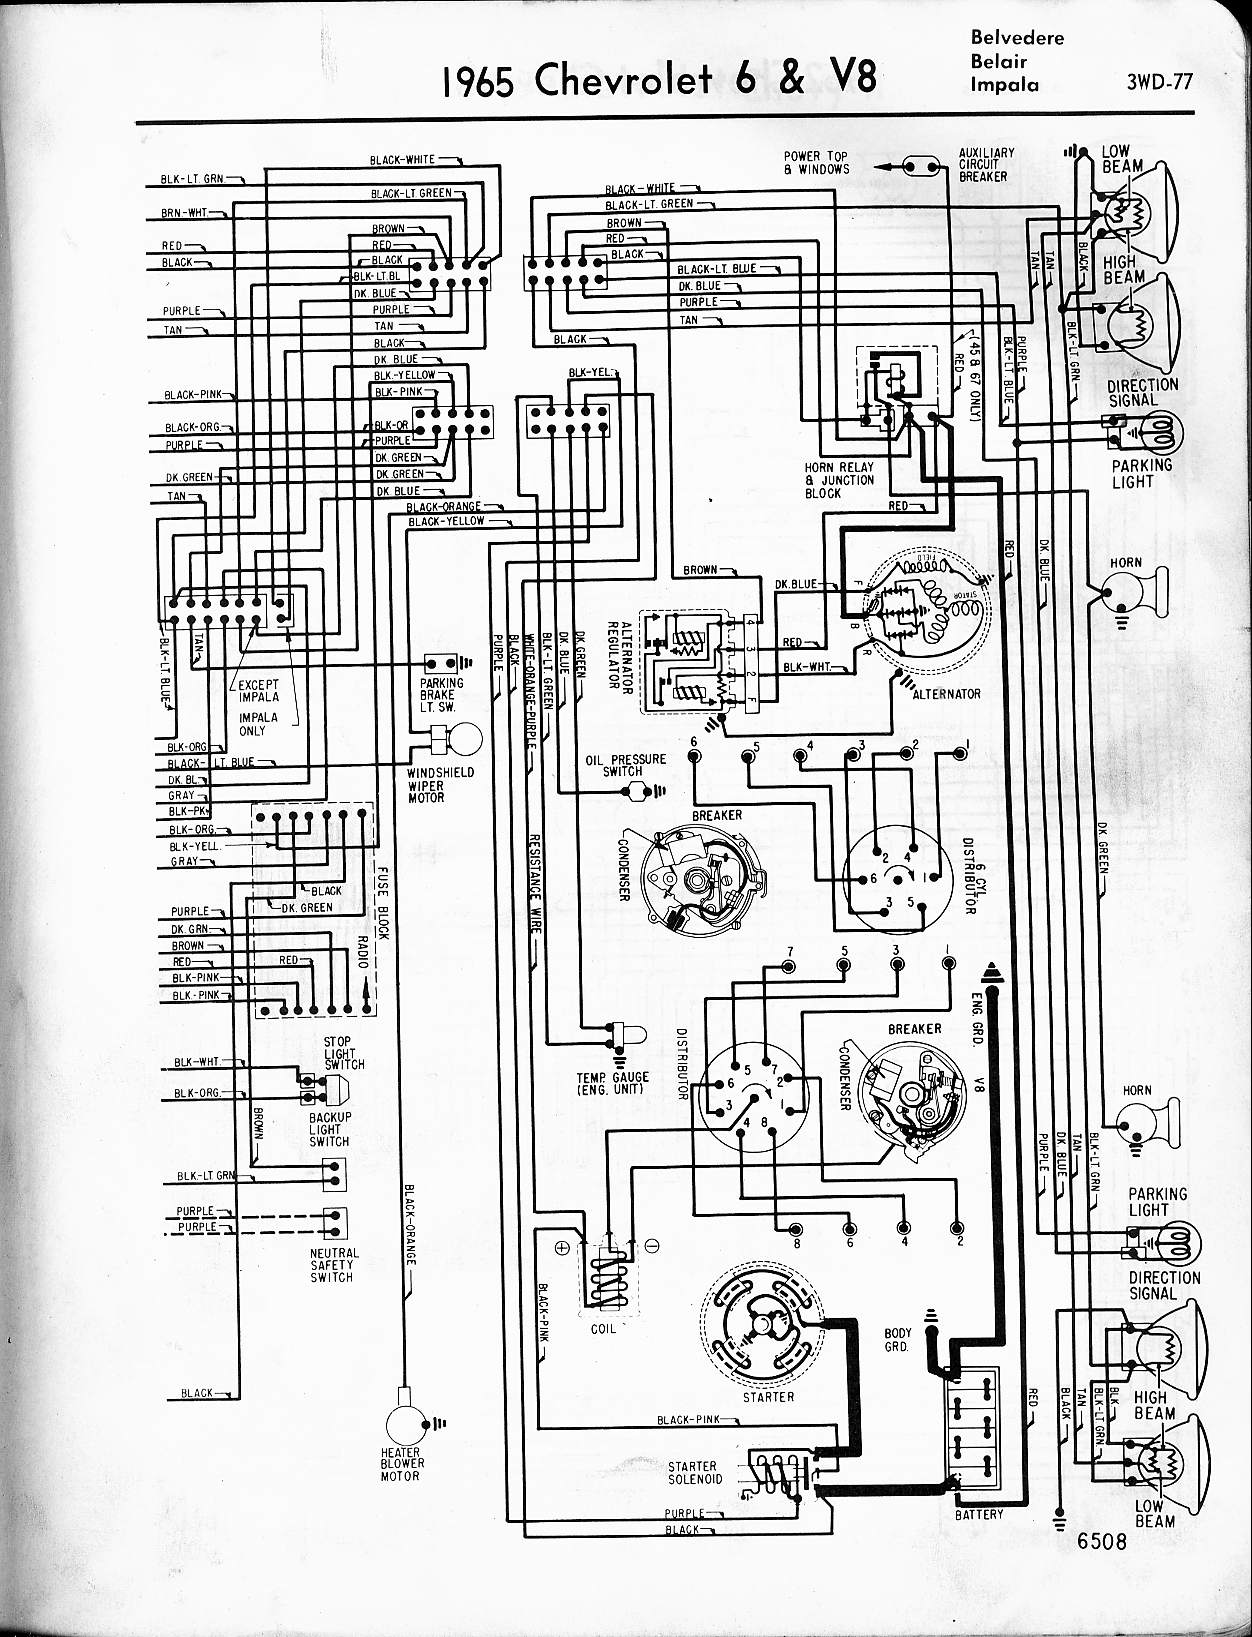 MWireChev65_3WD 077 57 65 chevy wiring diagrams 1966 impala wiring diagram at edmiracle.co